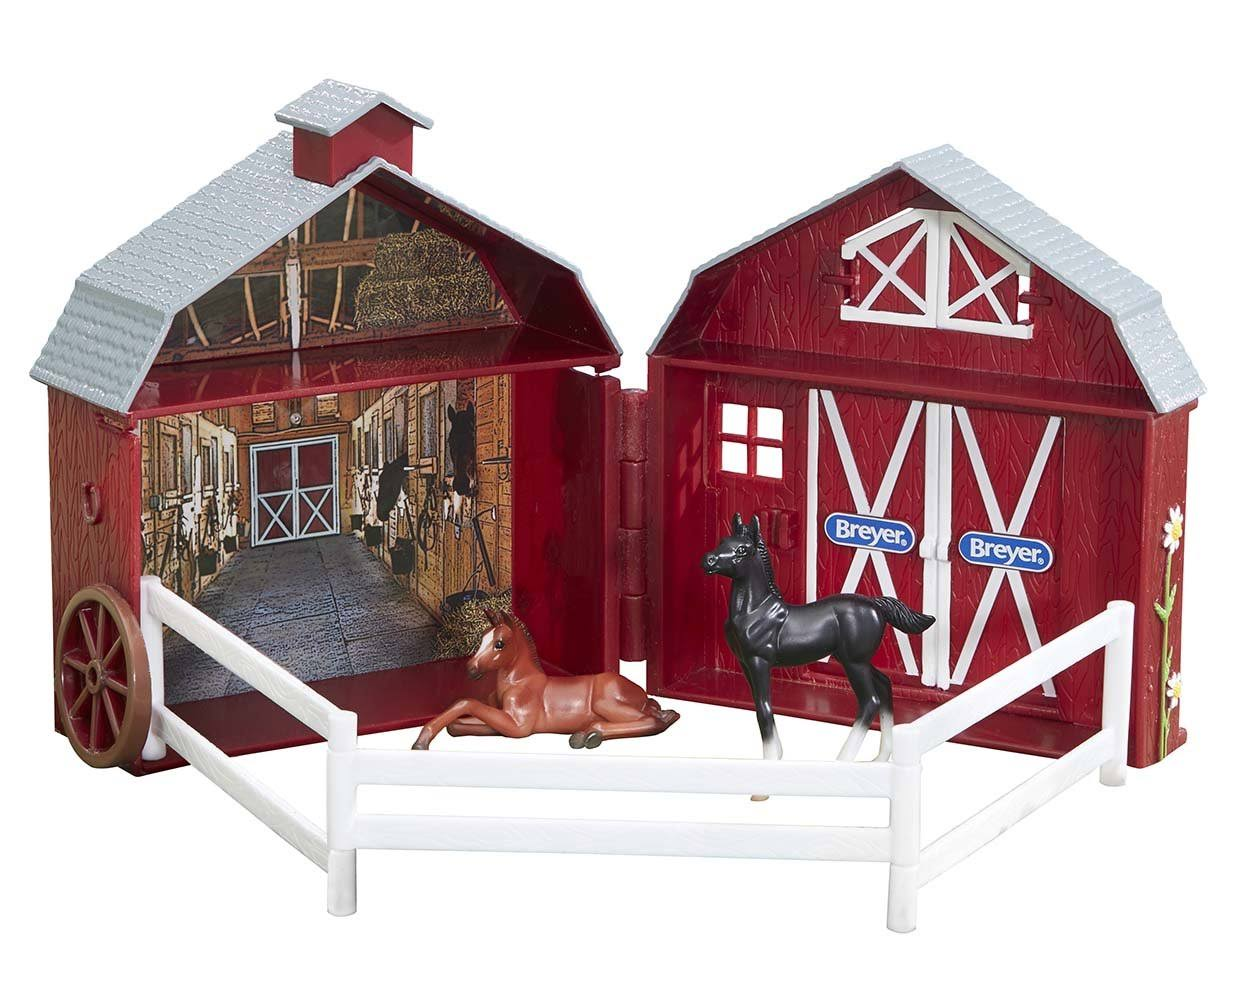 Breyer Stablemates Model Horse Play Set - 1/32 Scale